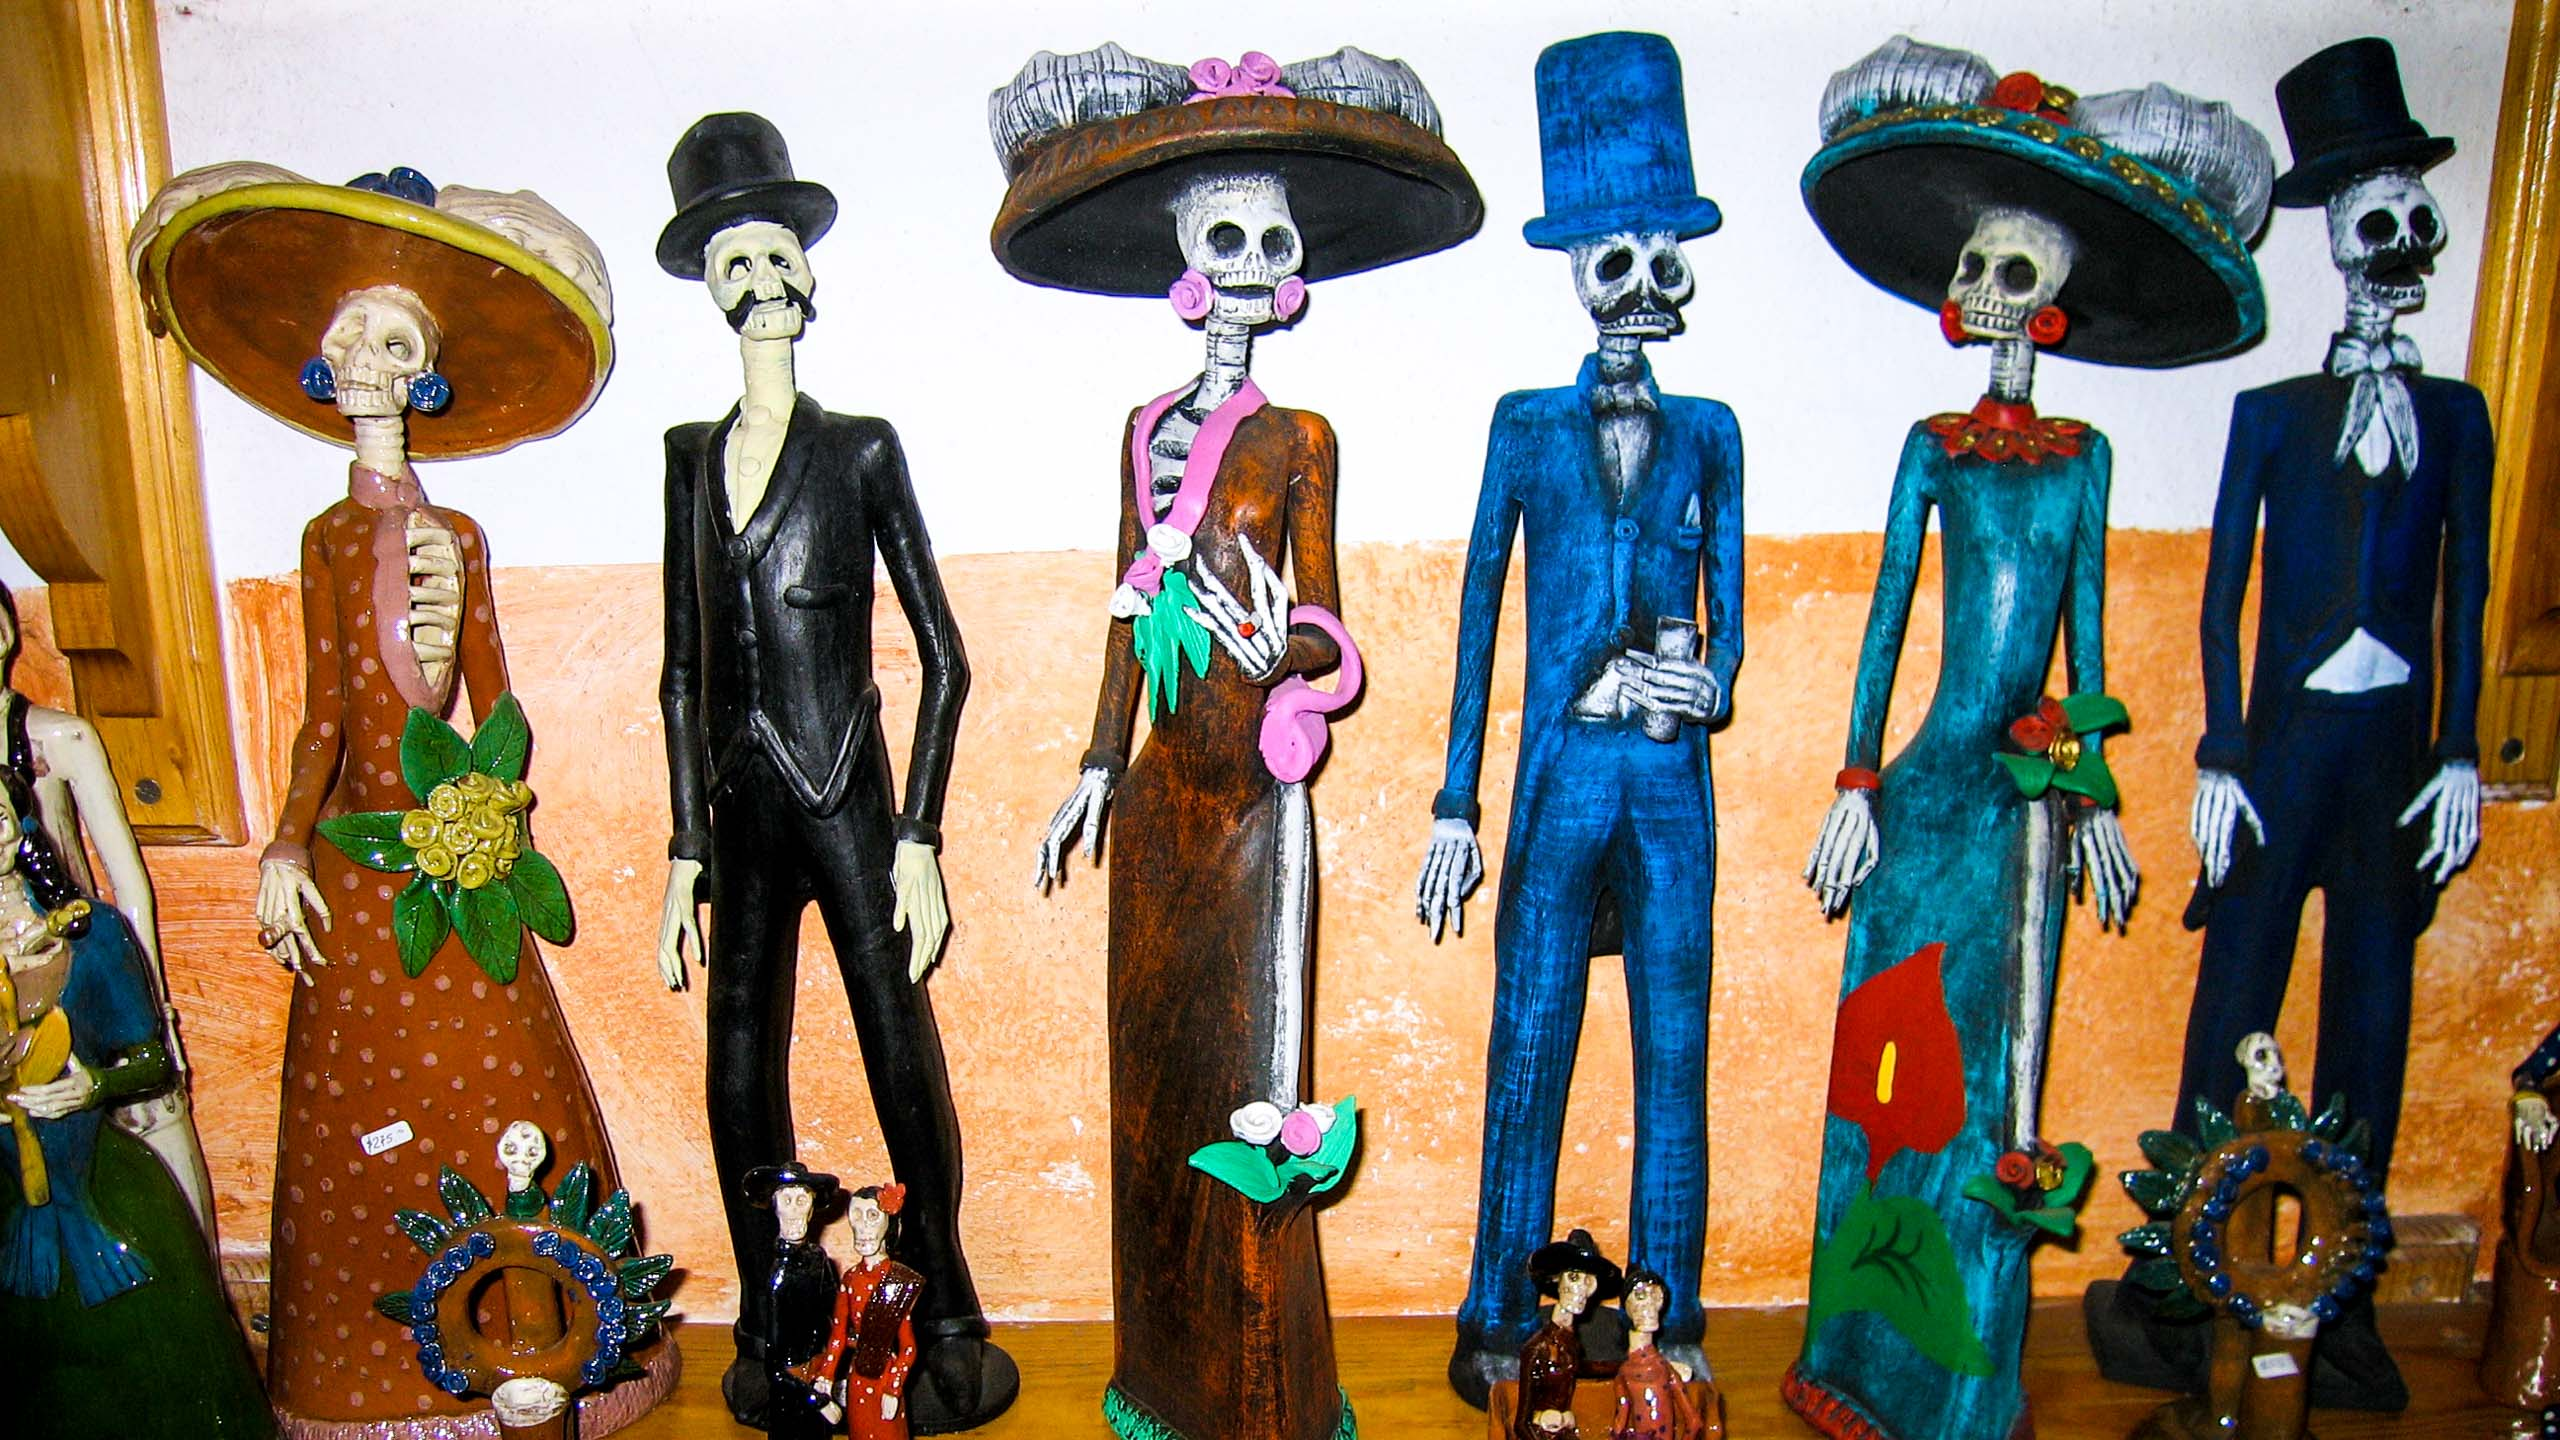 Day of the Dead dolls in Mexico